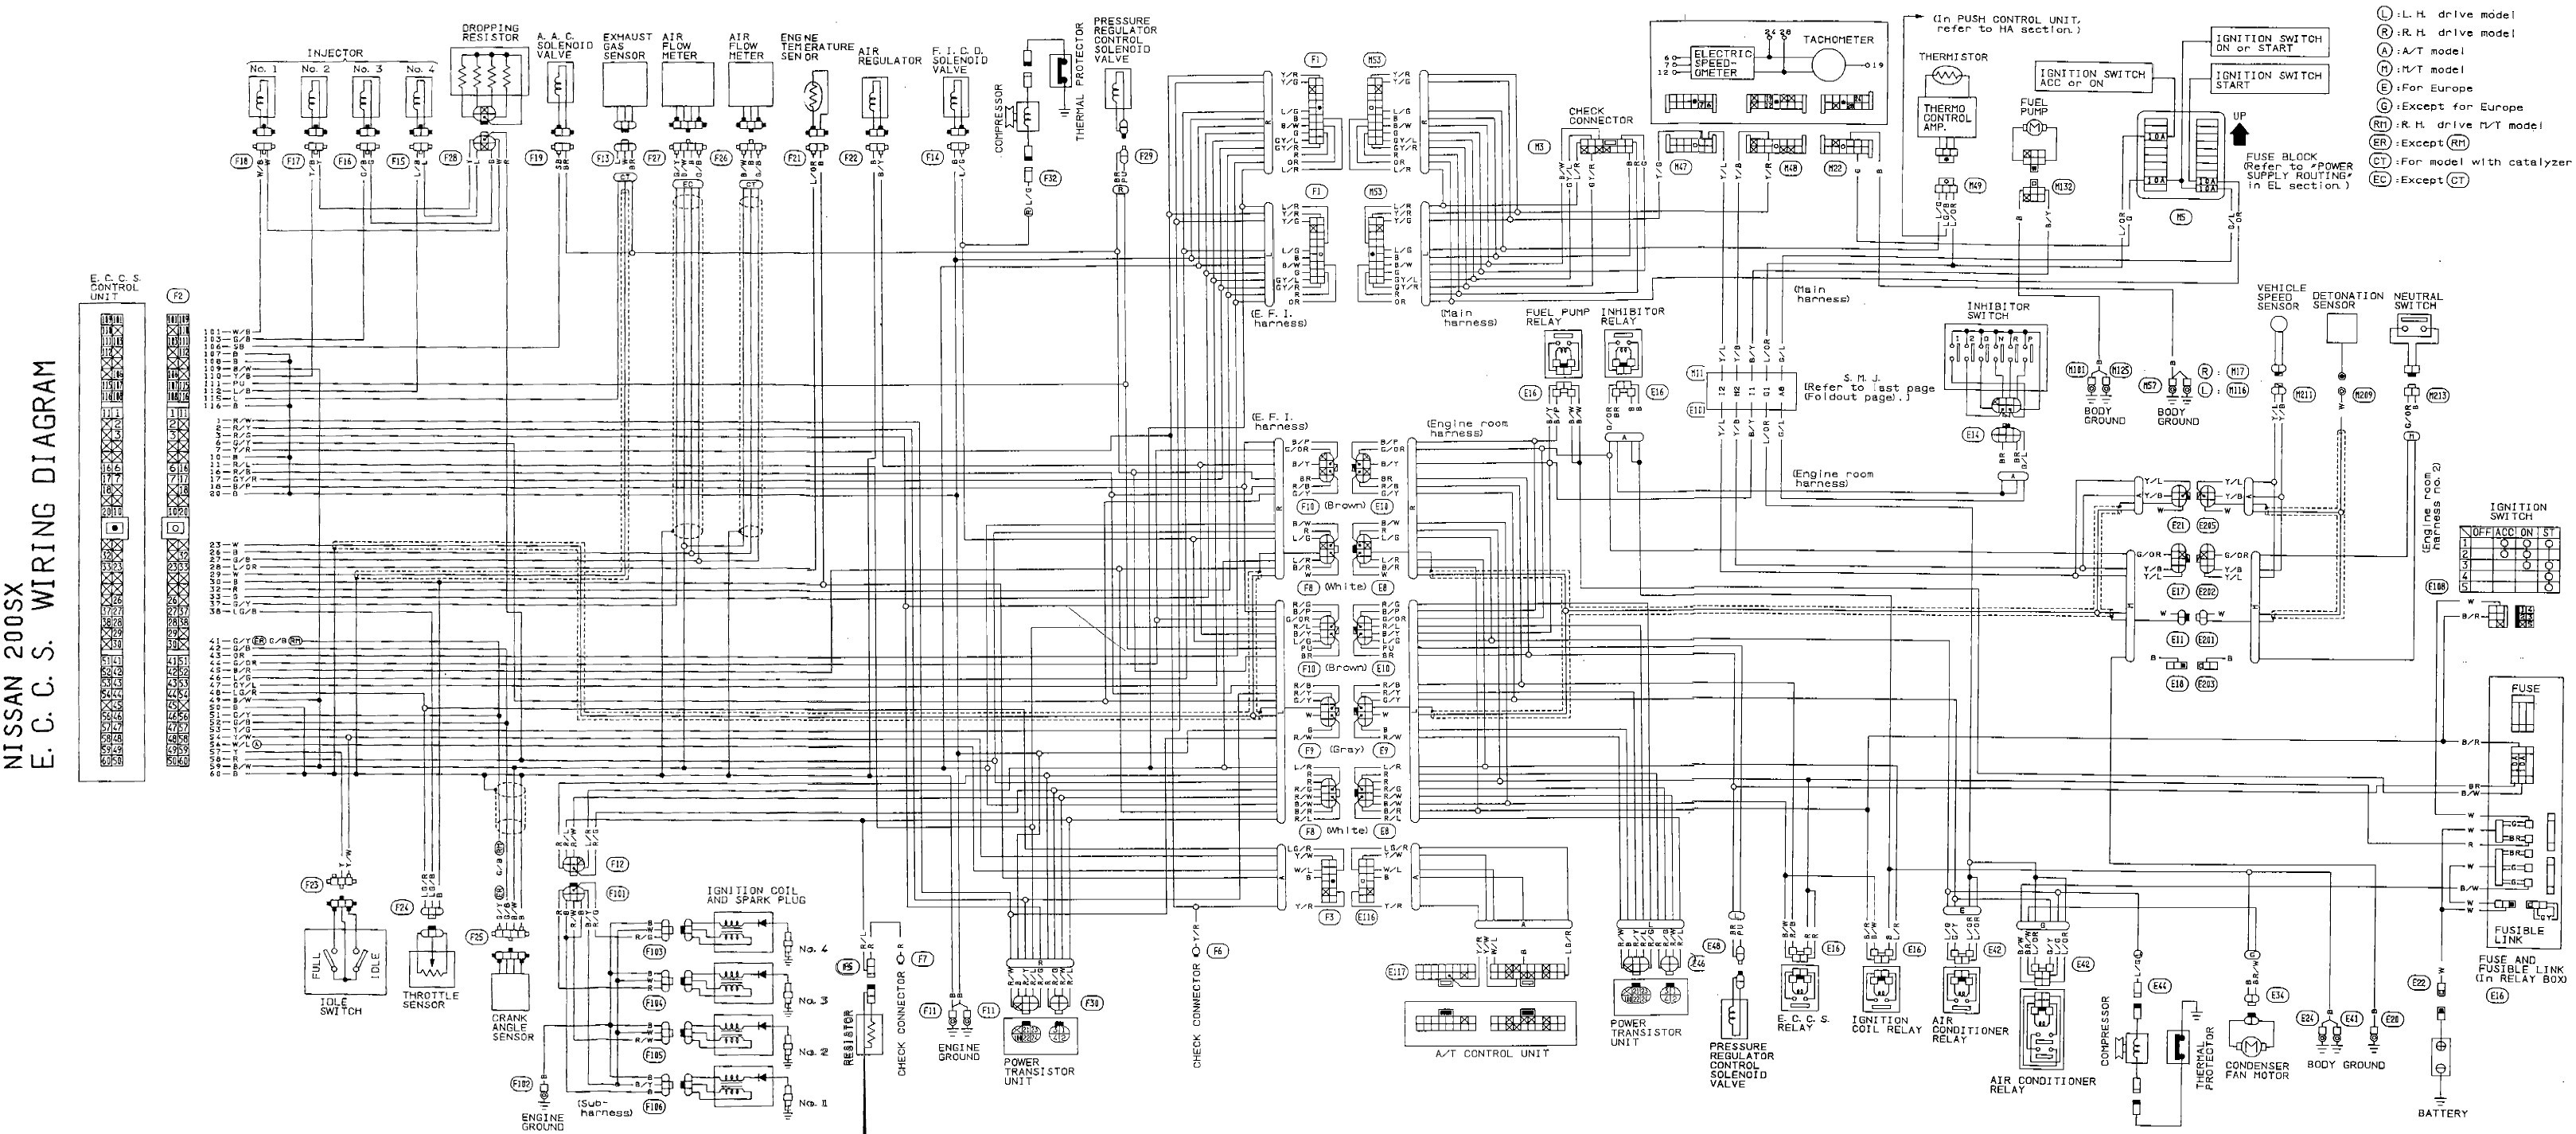 nissan 300zx engine diagram online schematic diagram u2022 rh holyoak co 1991 nissan pathfinder wiring diagram 1991 nissan hardbody wiring diagram